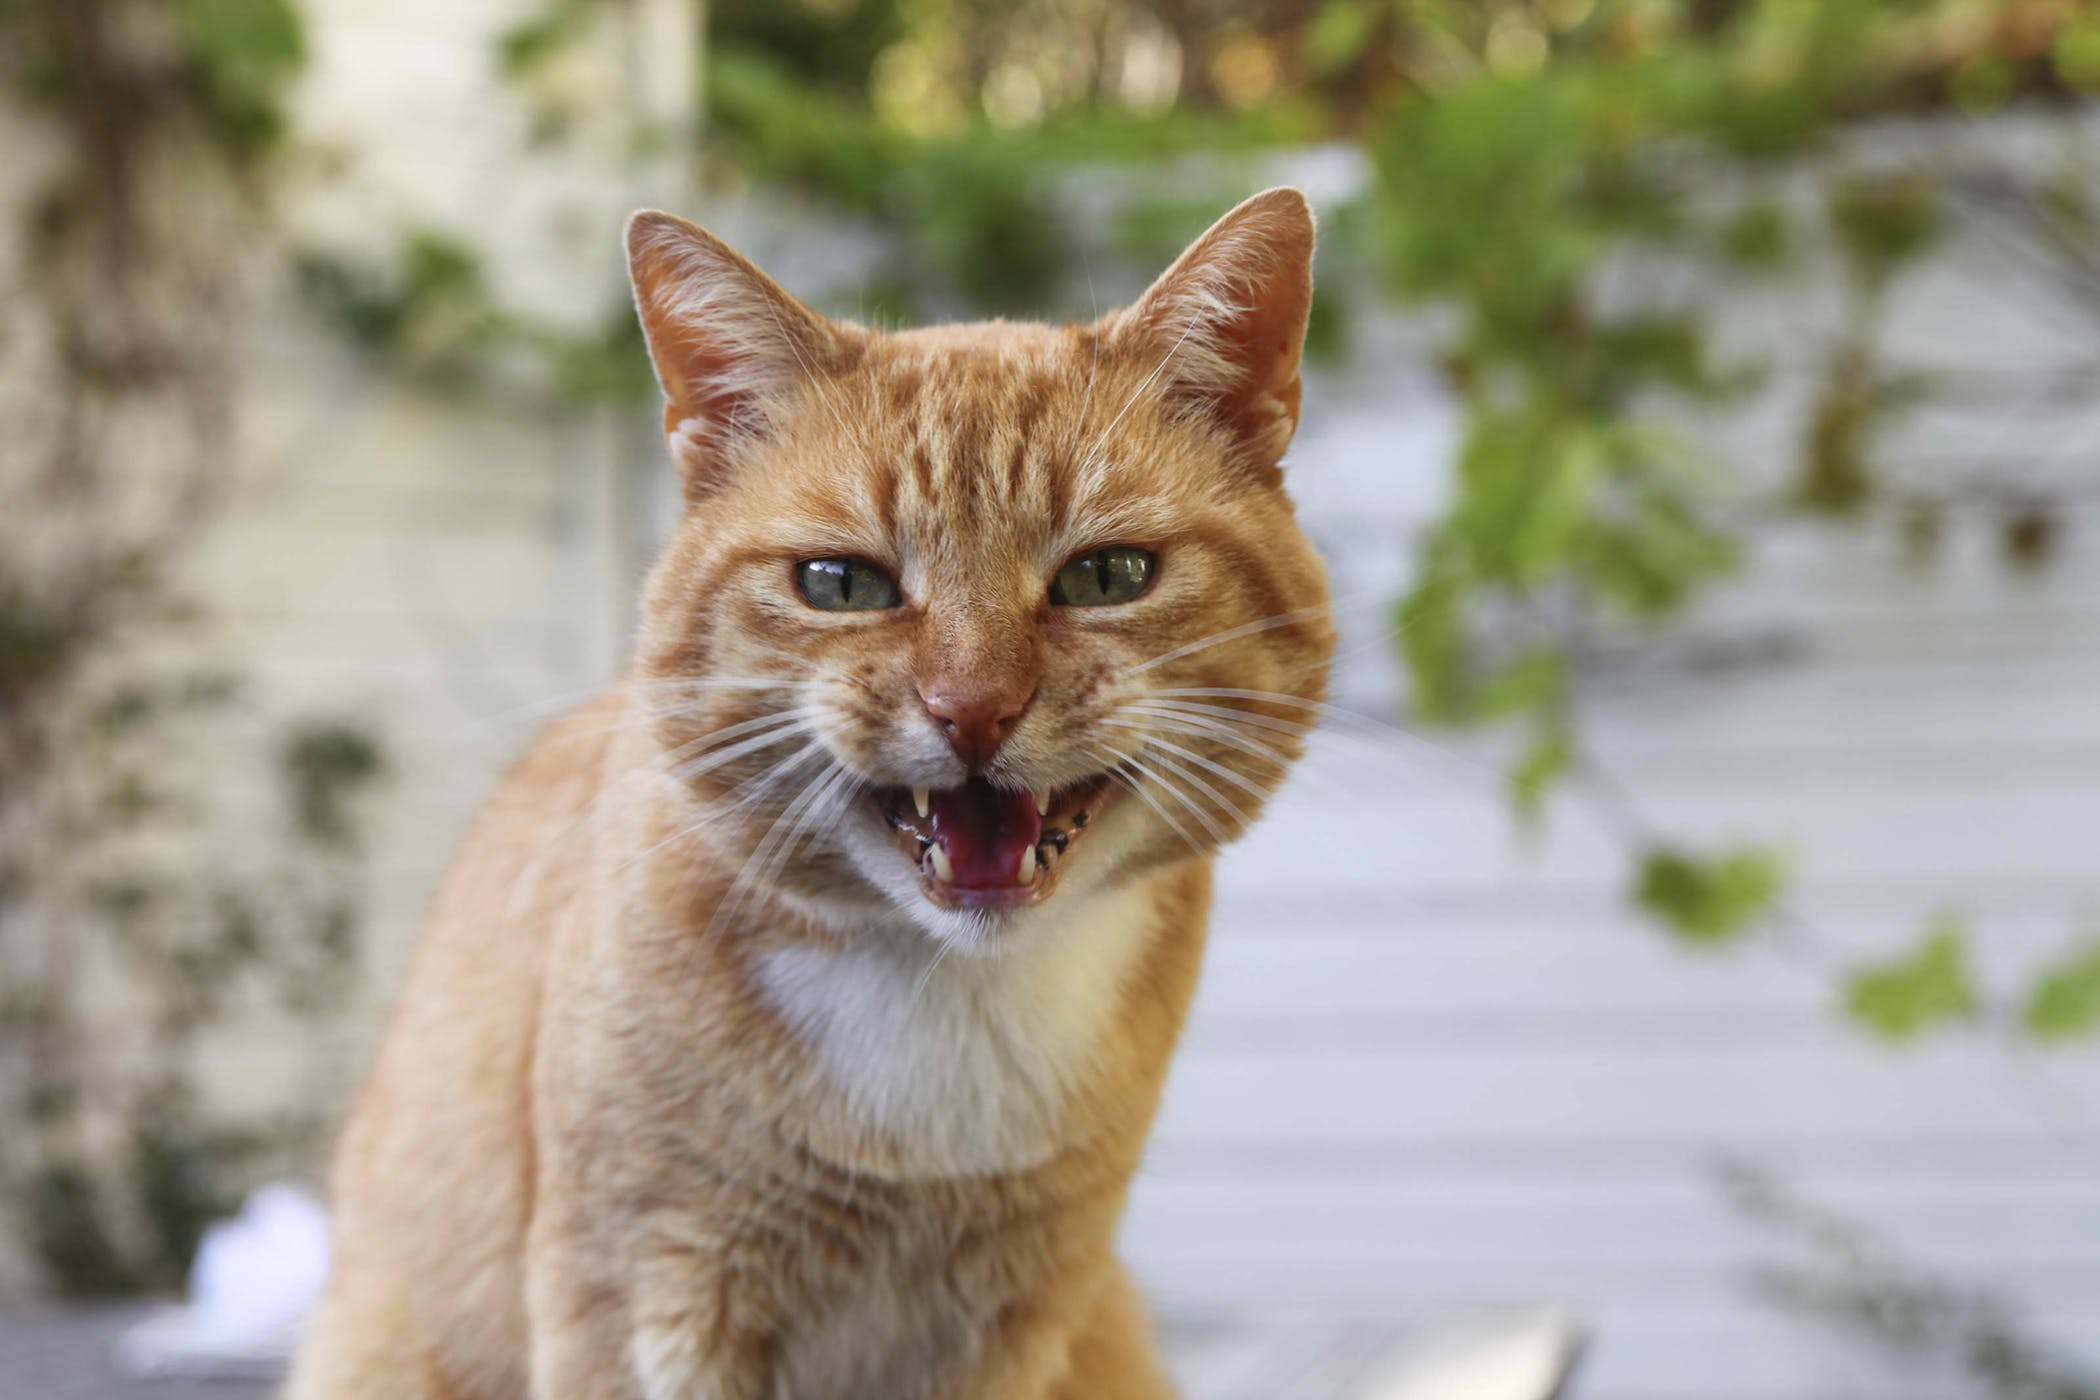 Rupture of the Bladder in Cats - Symptoms, Causes, Diagnosis